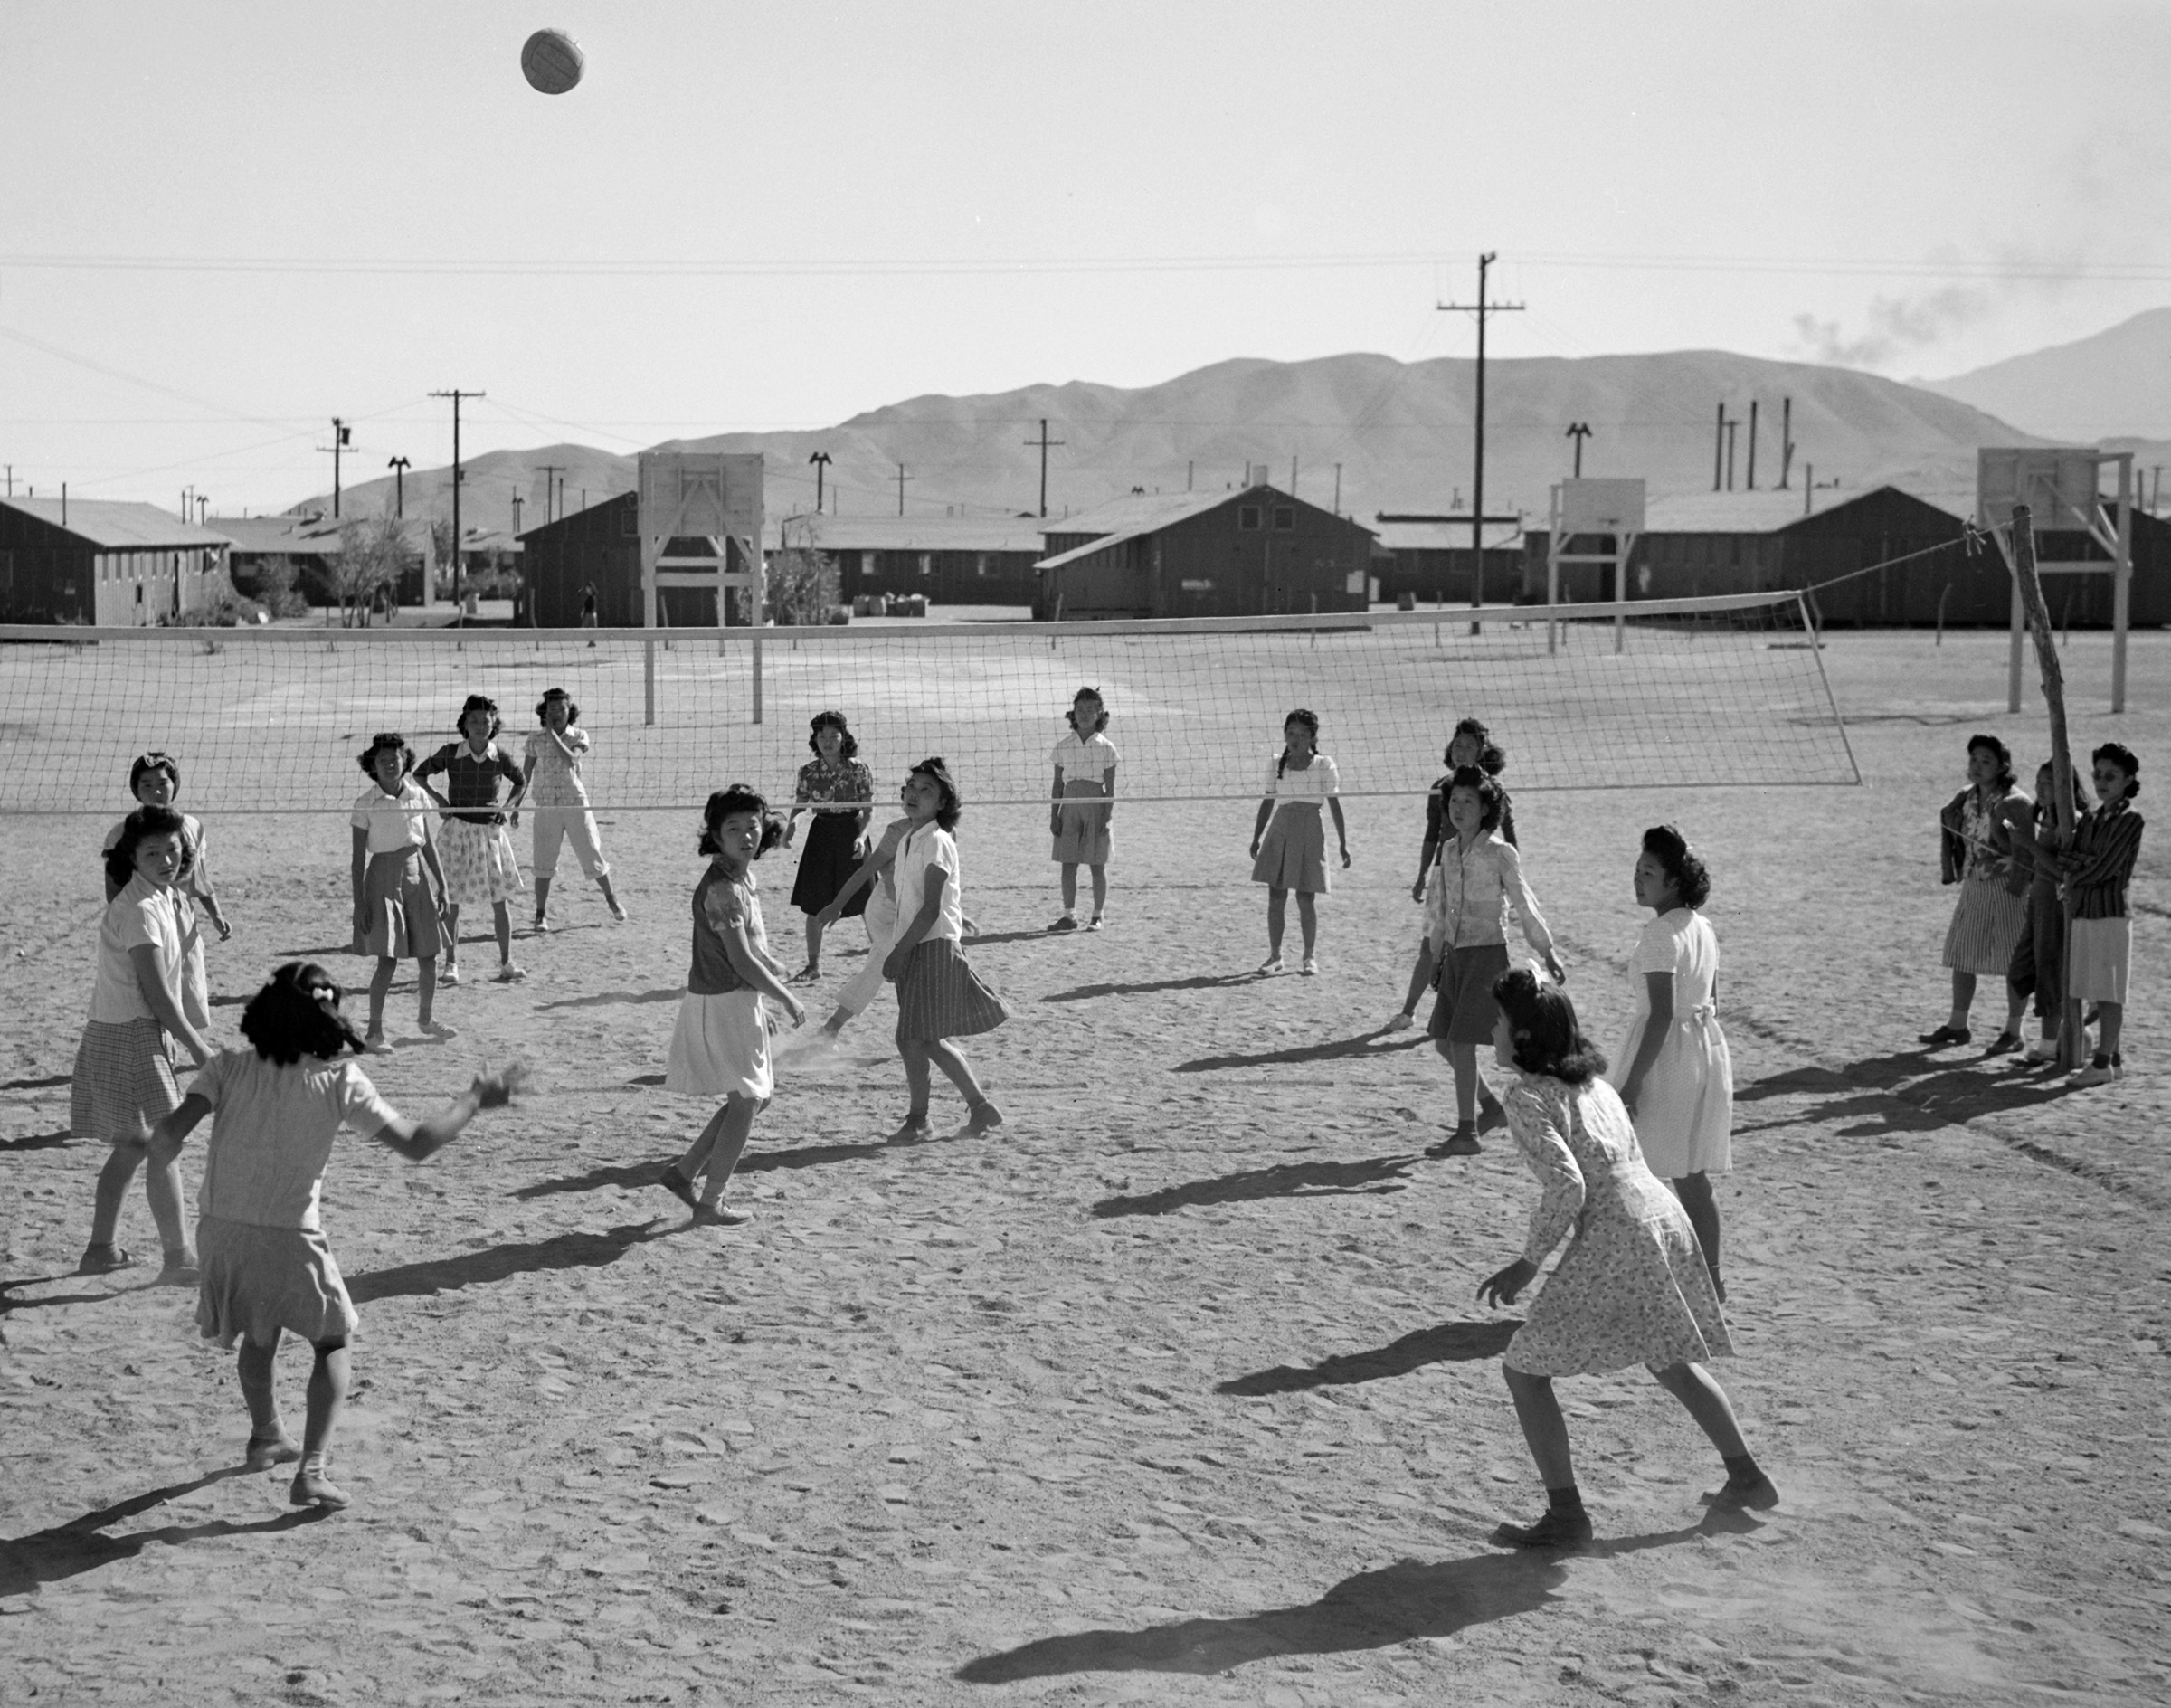 history of volleyball Volleyball is more than a century old it originated in the united states in 1895, earning its place as one of the most popular spectator sports in the world, ranking second only to soccer.